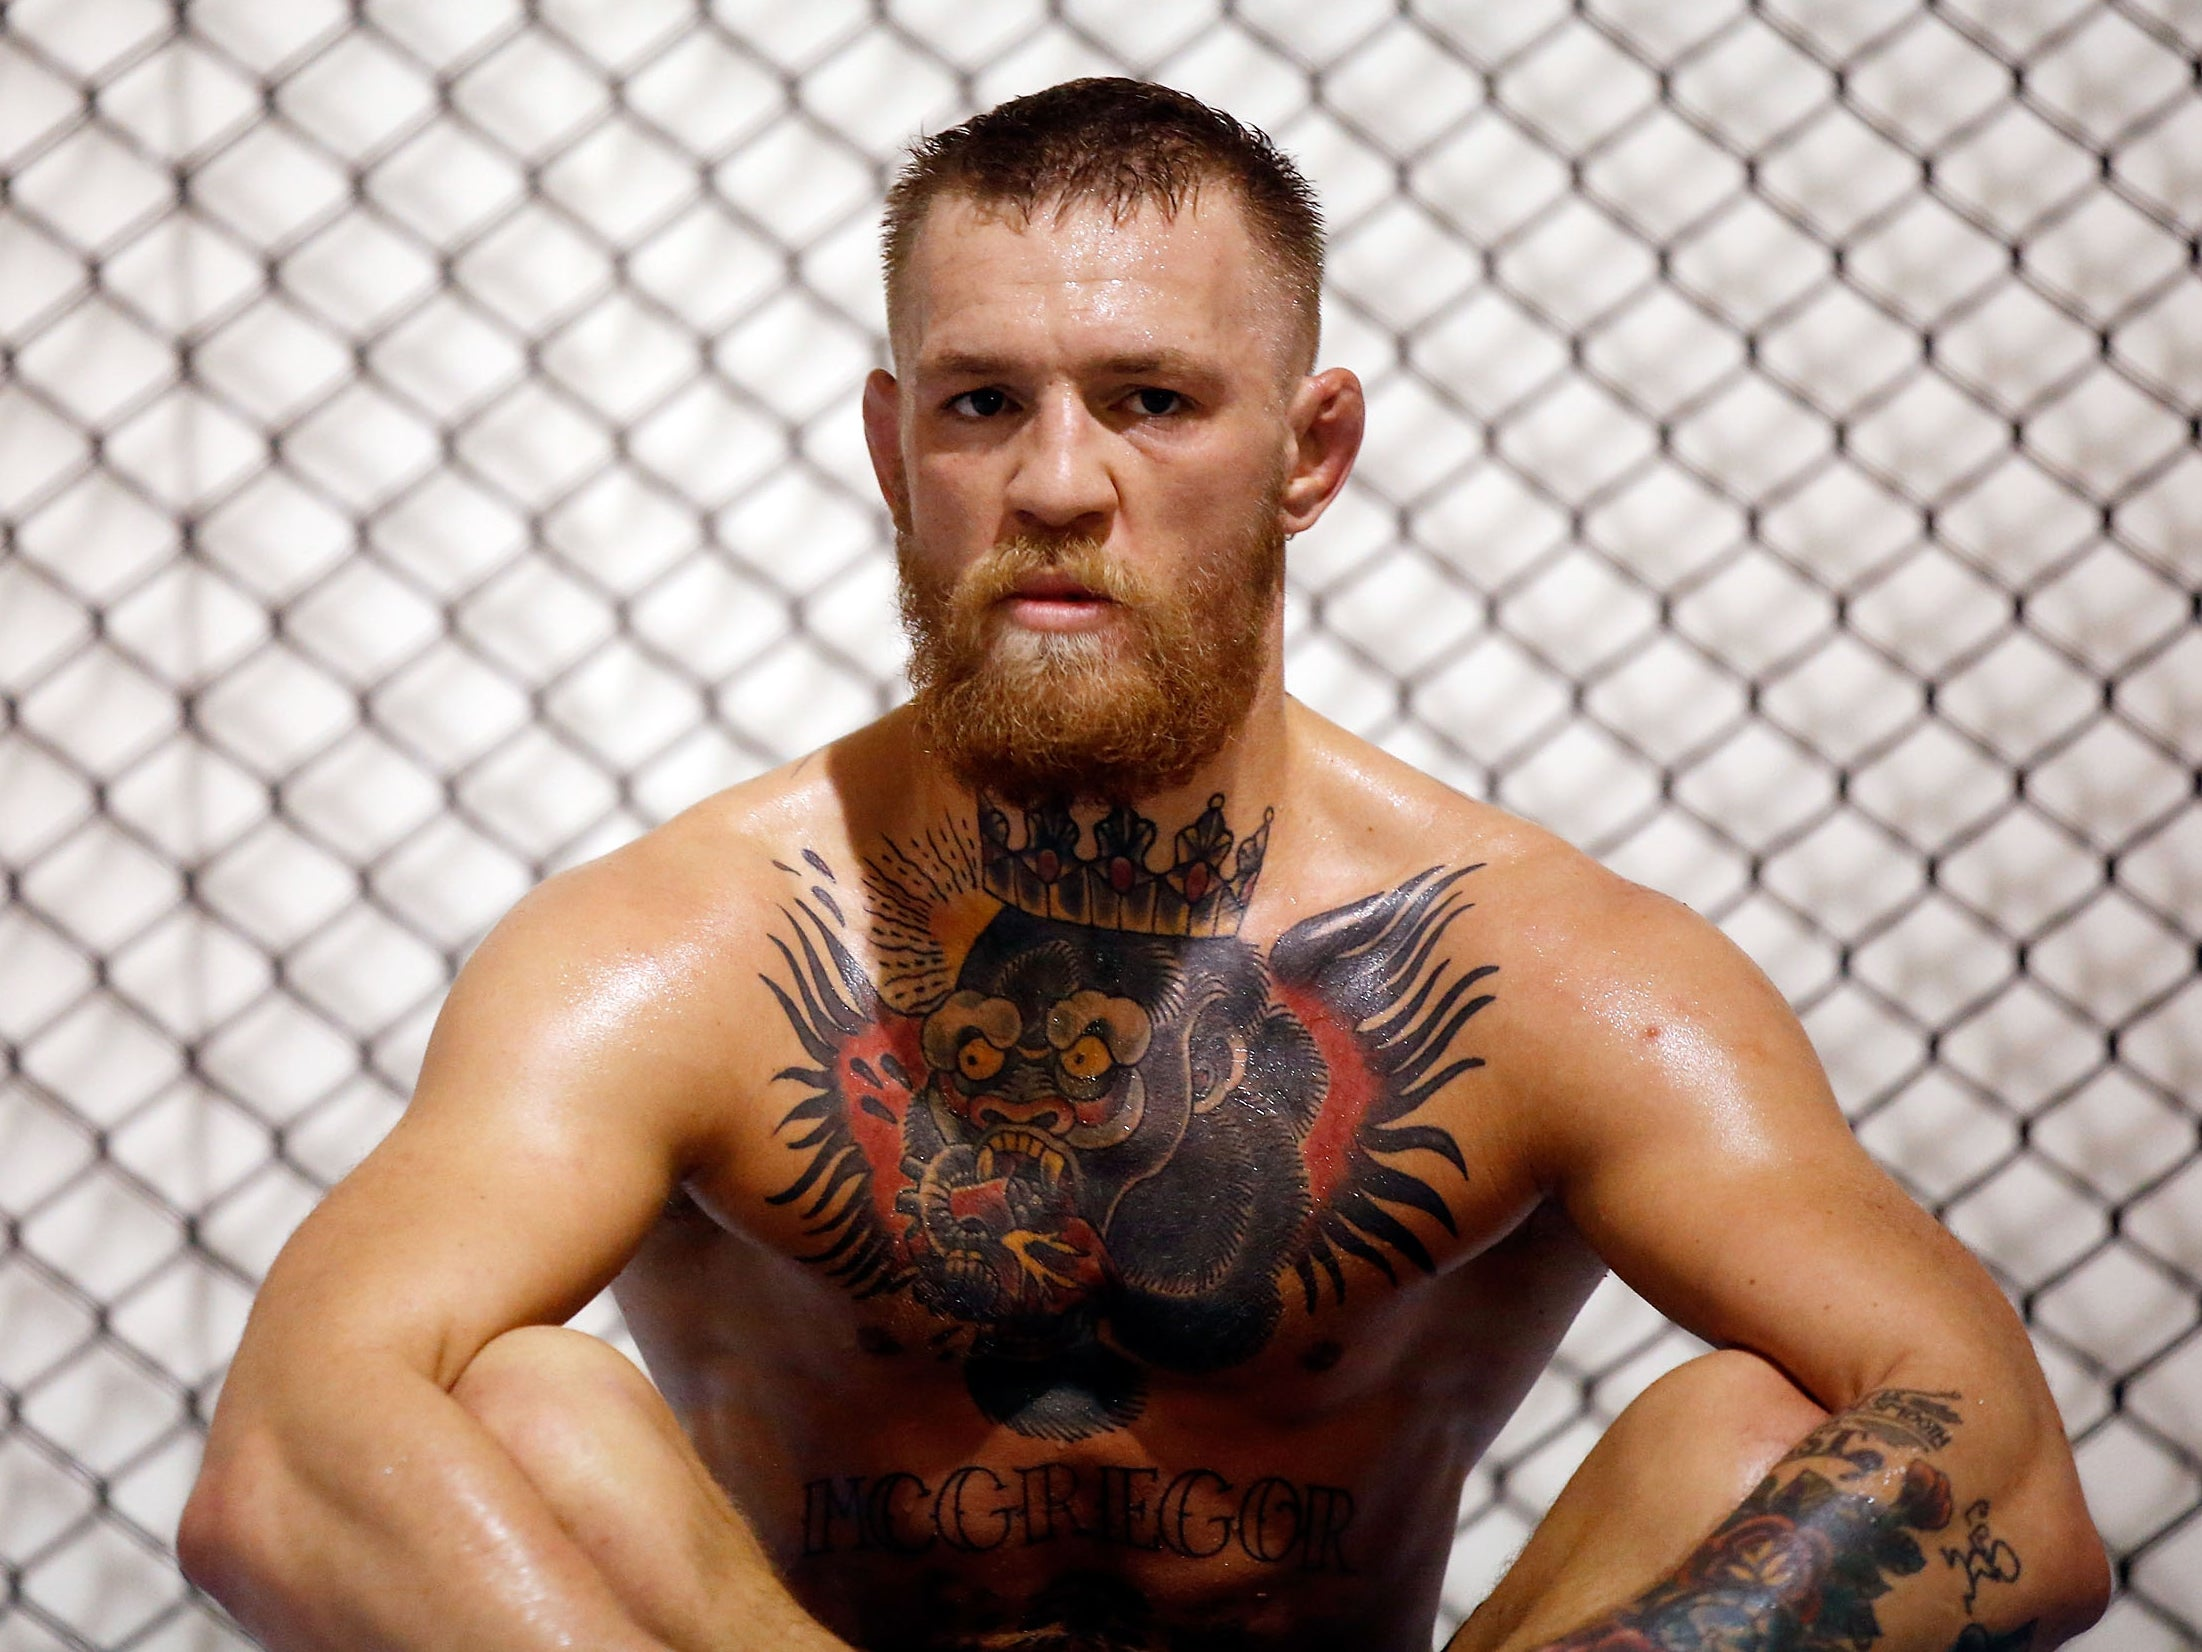 mc gregor latin singles Ufc lightweight champion conor mcgregor has a 7/4 chance of appearing at wrestlemania 34, according to bookmakers.